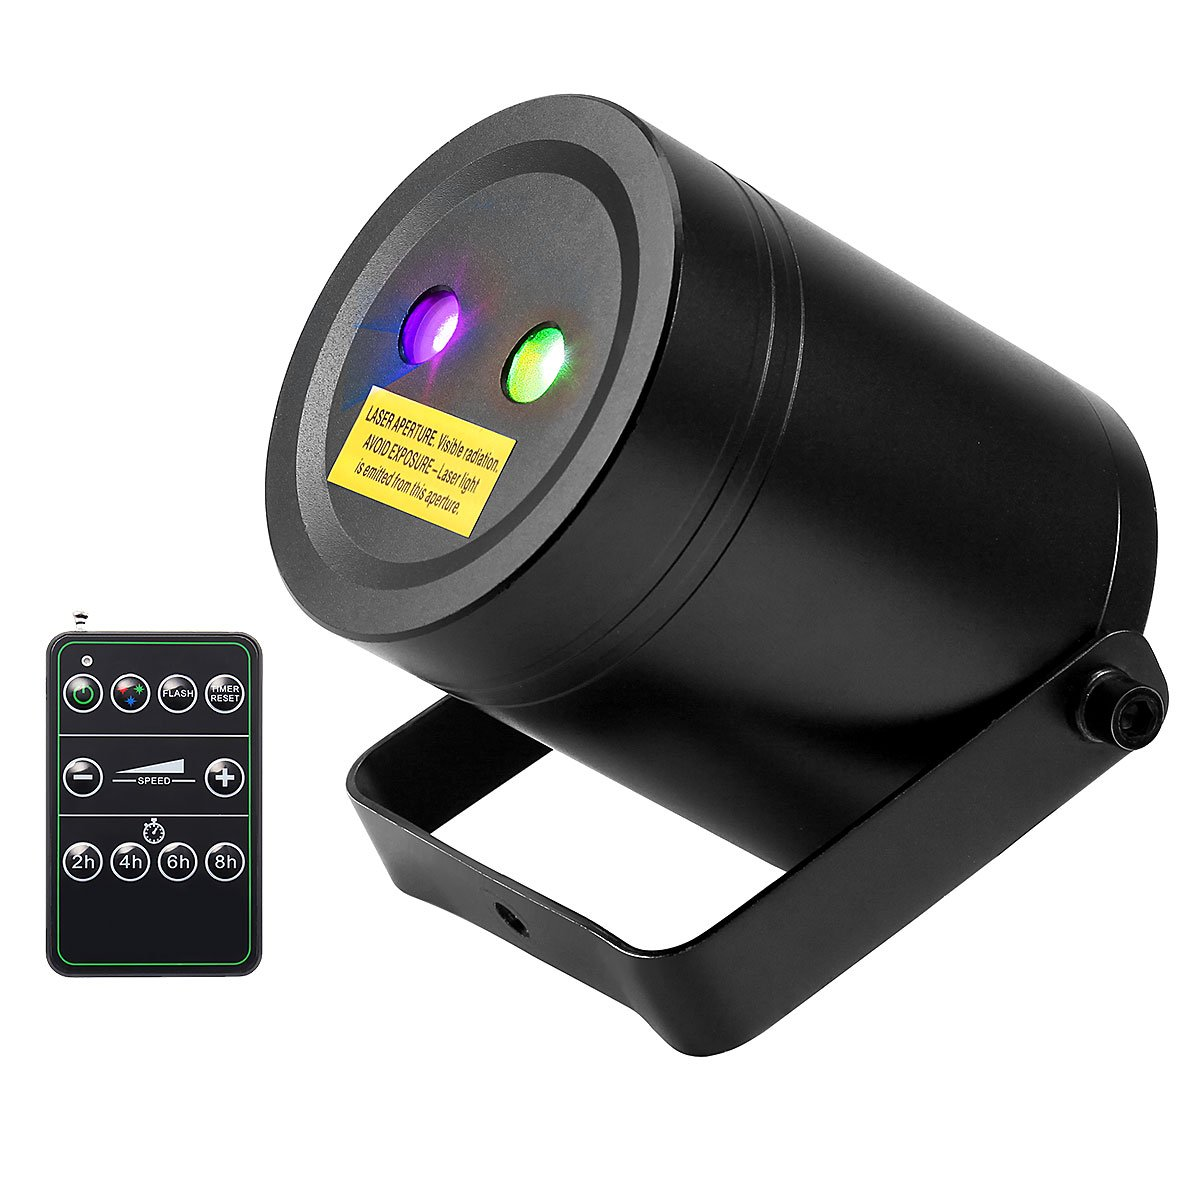 Laser party lights arotek green blue moving waterproof outdoor laser party lights arotek green blue moving waterproof outdoor star projector spotlight with rf remote control fda approved decorative lights dynamic aloadofball Gallery